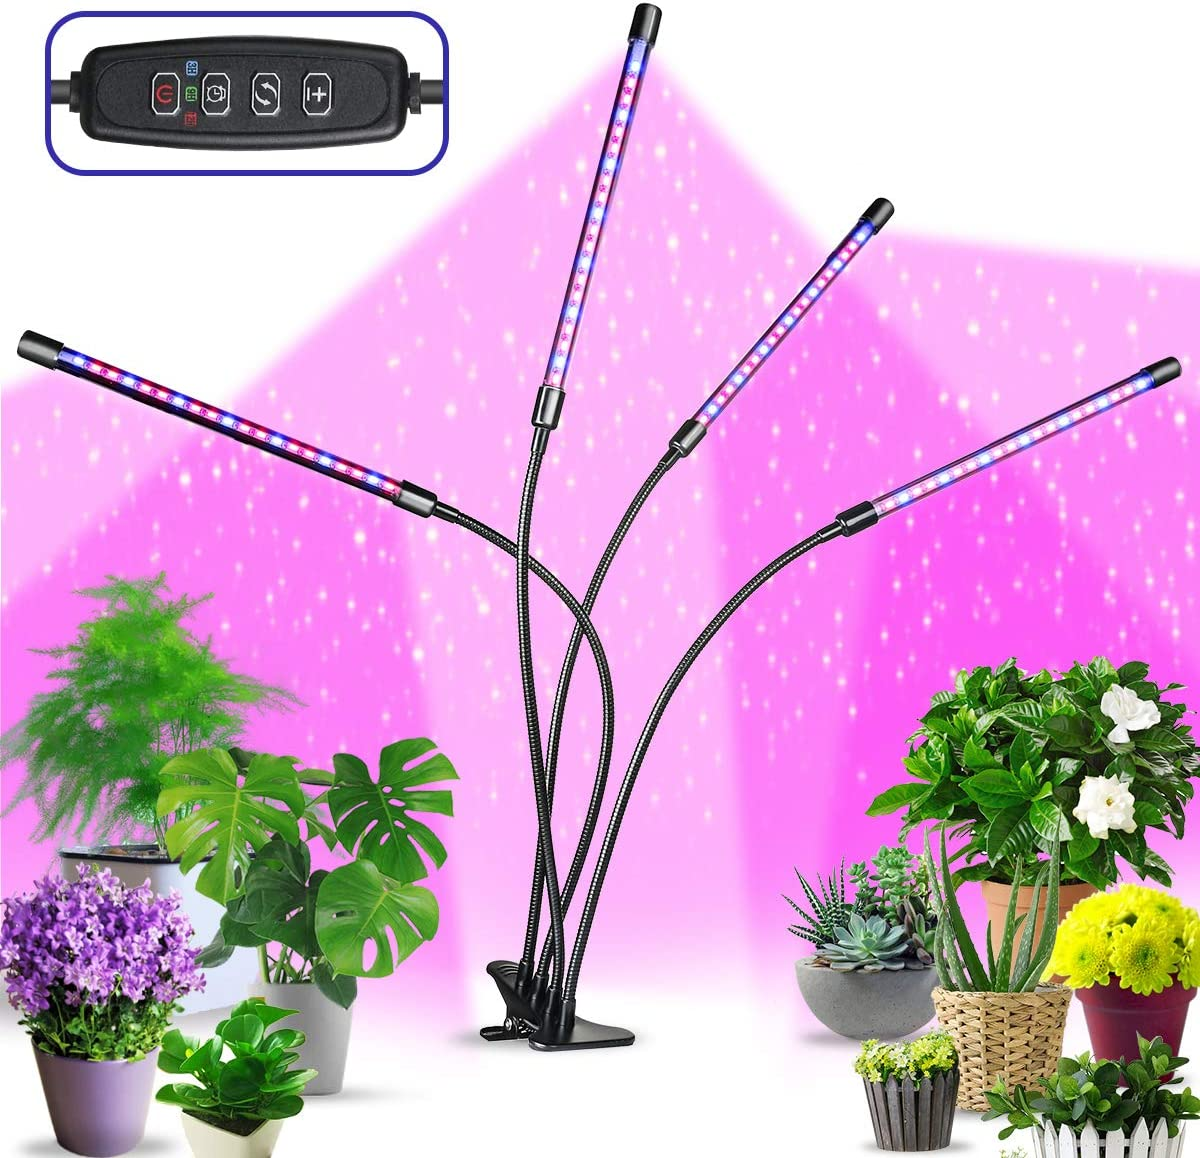 LED Grow Light for Indoor Plants, 4 Heads Goose-Neck Plant Light, Auto 3 9 12H Timer Plant Lighting, 9 Dimmable Brightness Full Spectrum Grow Lamp, 80LED 40W Grow Light for Indoor Plant Growth